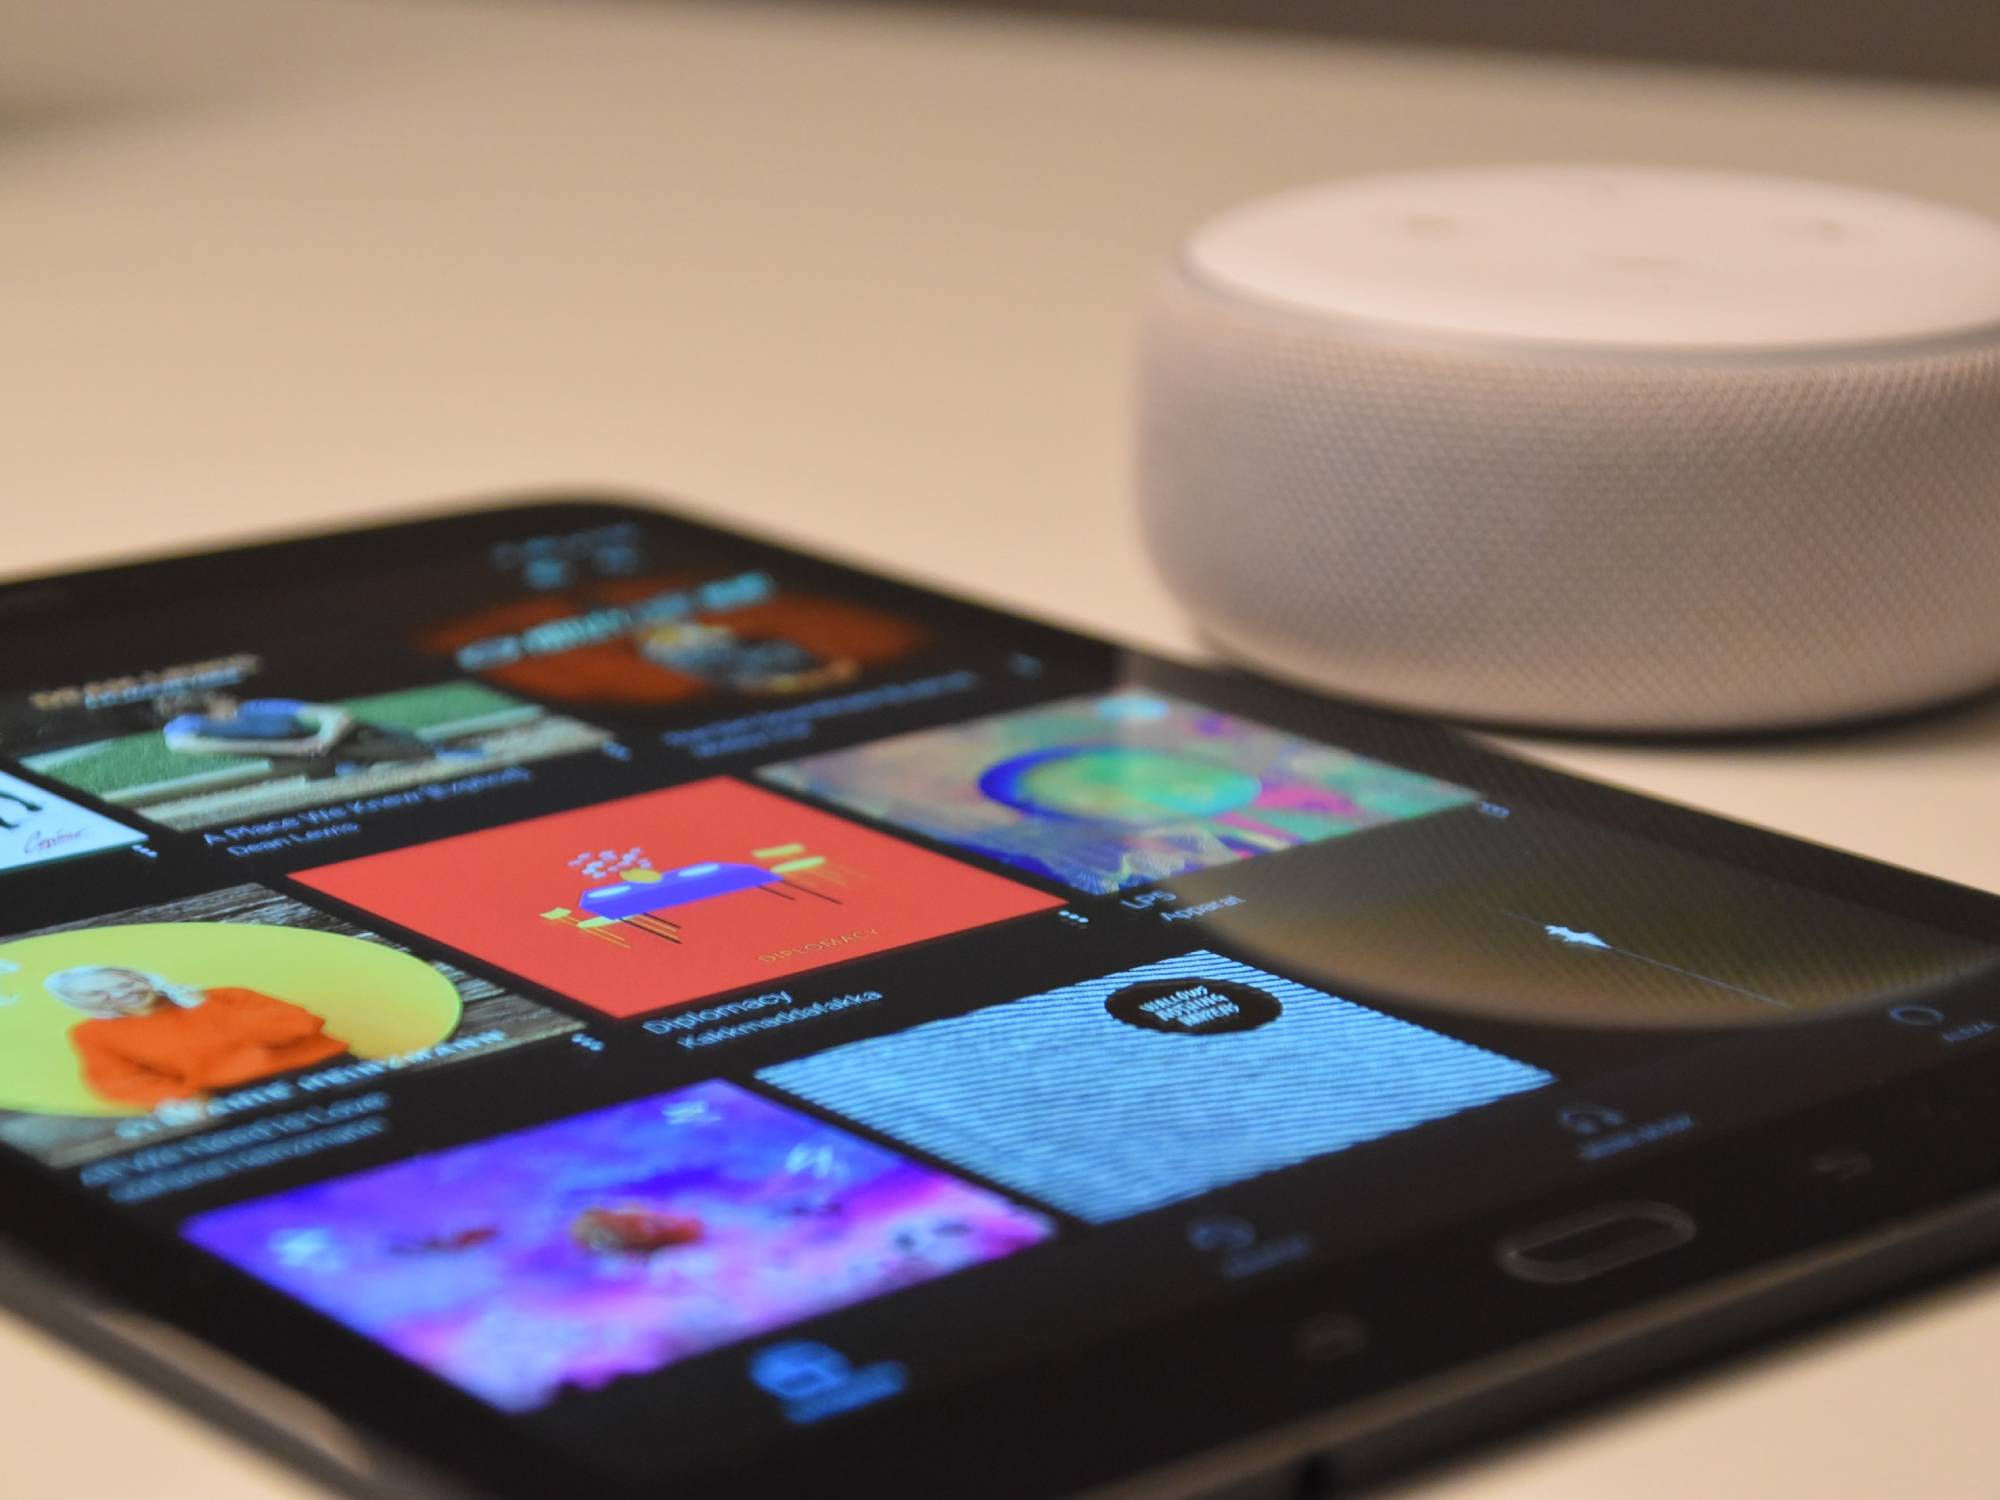 Stream audio to your smart speaker from any device